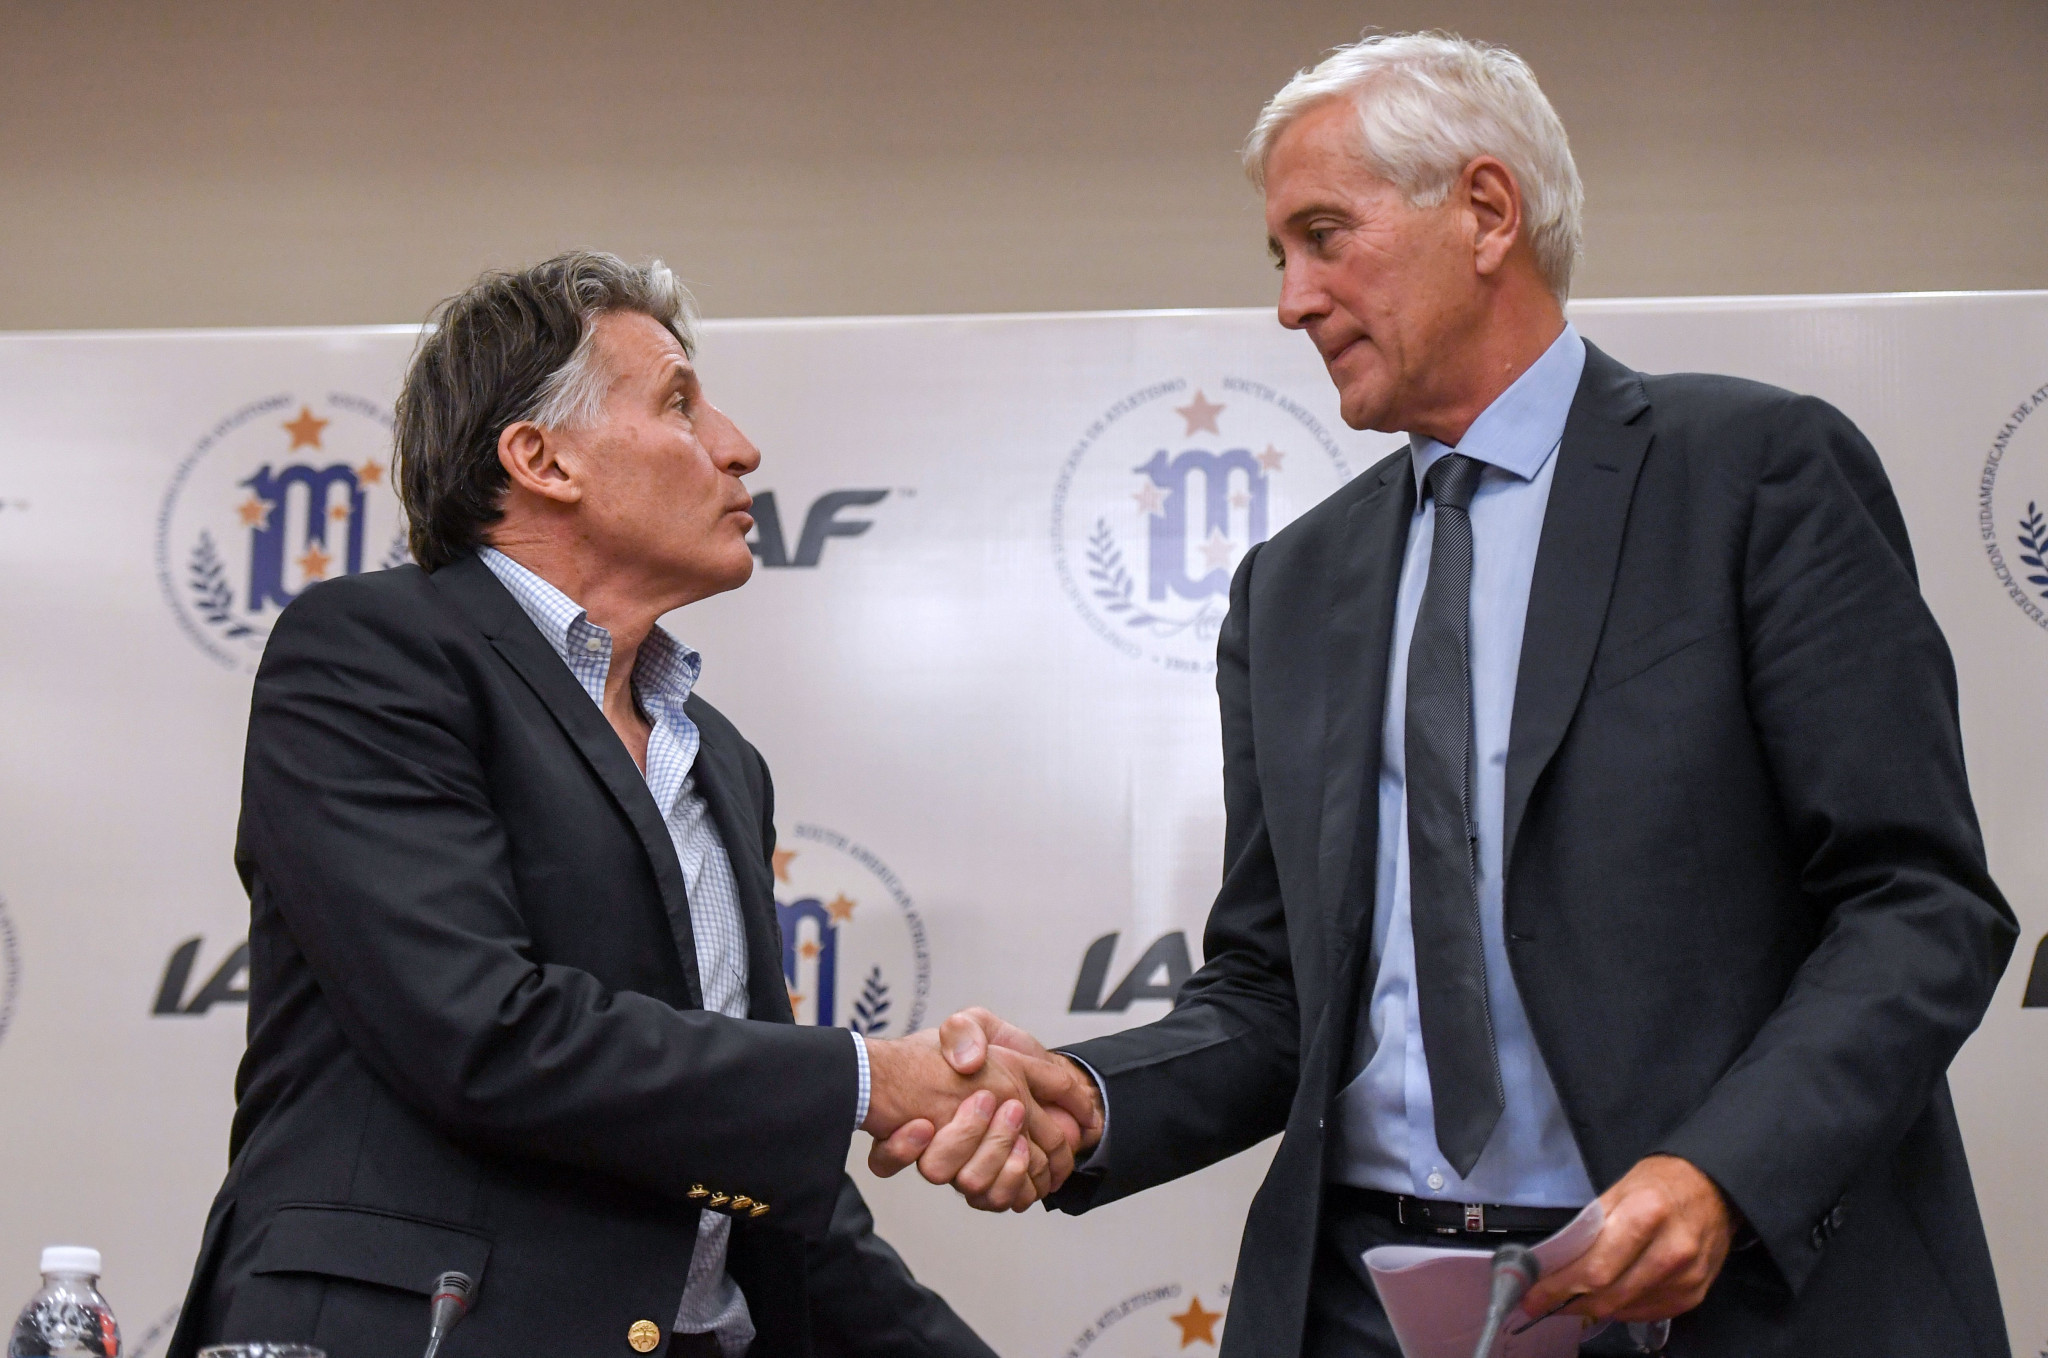 Sebastian Coe and Rune Andersen shake hands following the IAAF Council meeting in Buenos Aires today ©Getty Images